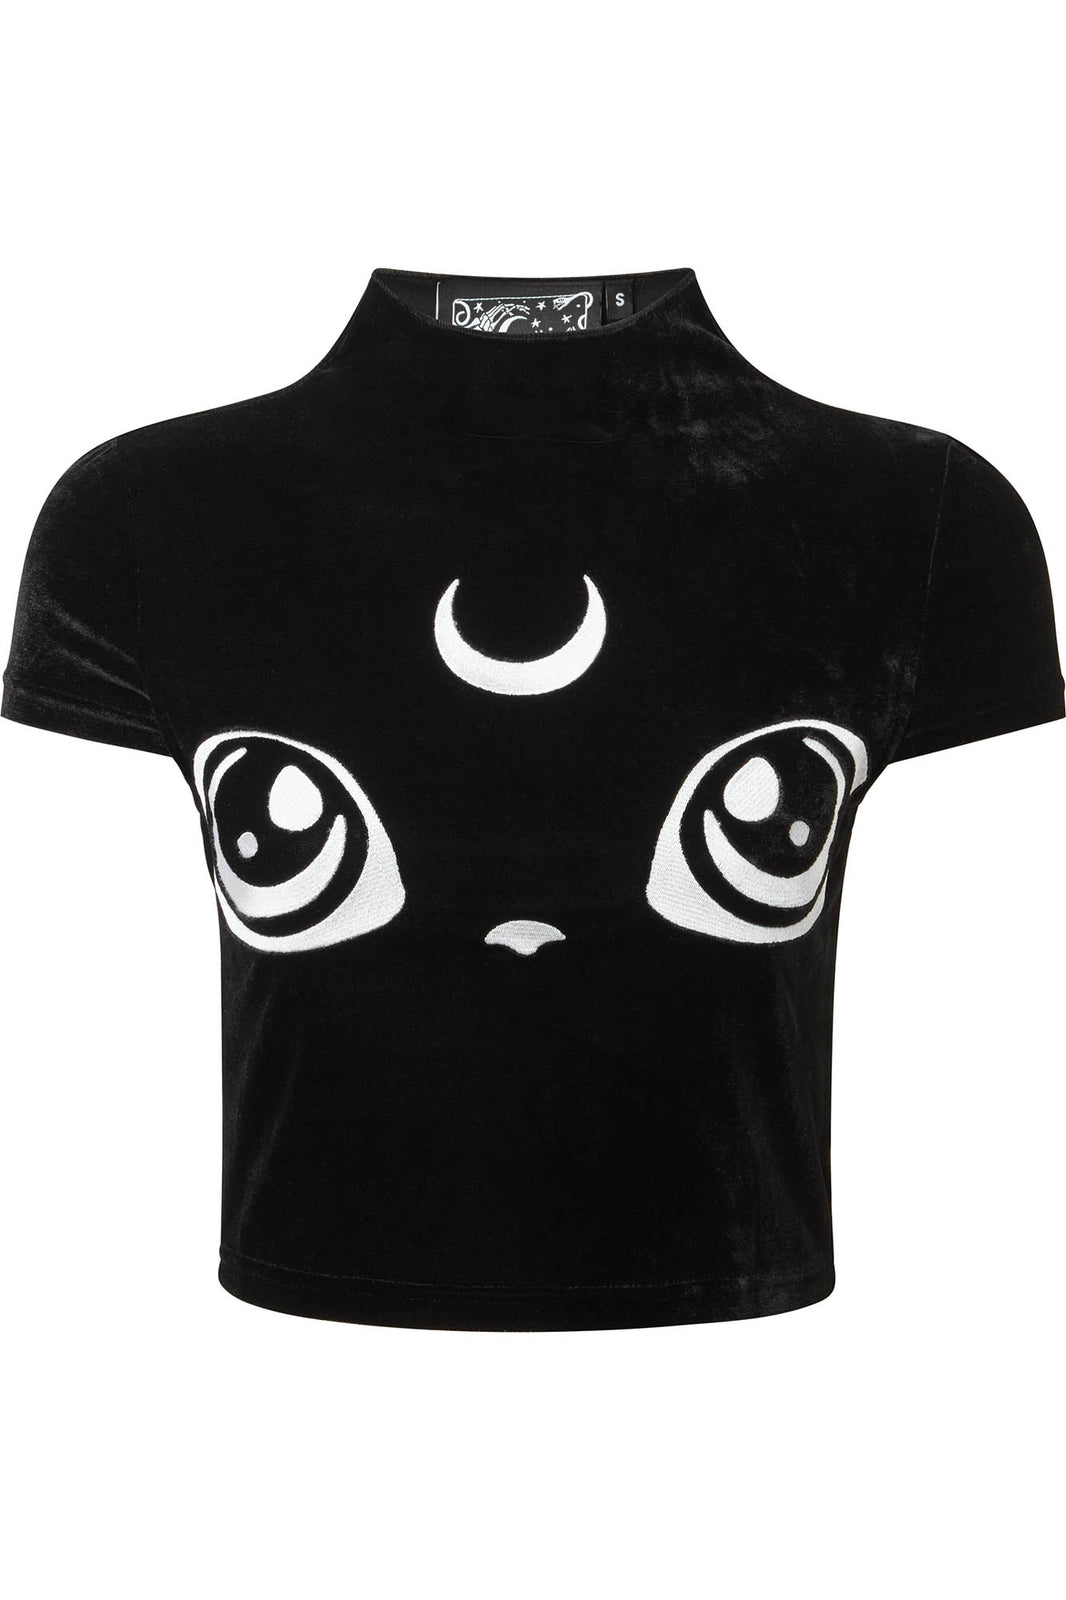 Meowgical Crop Top